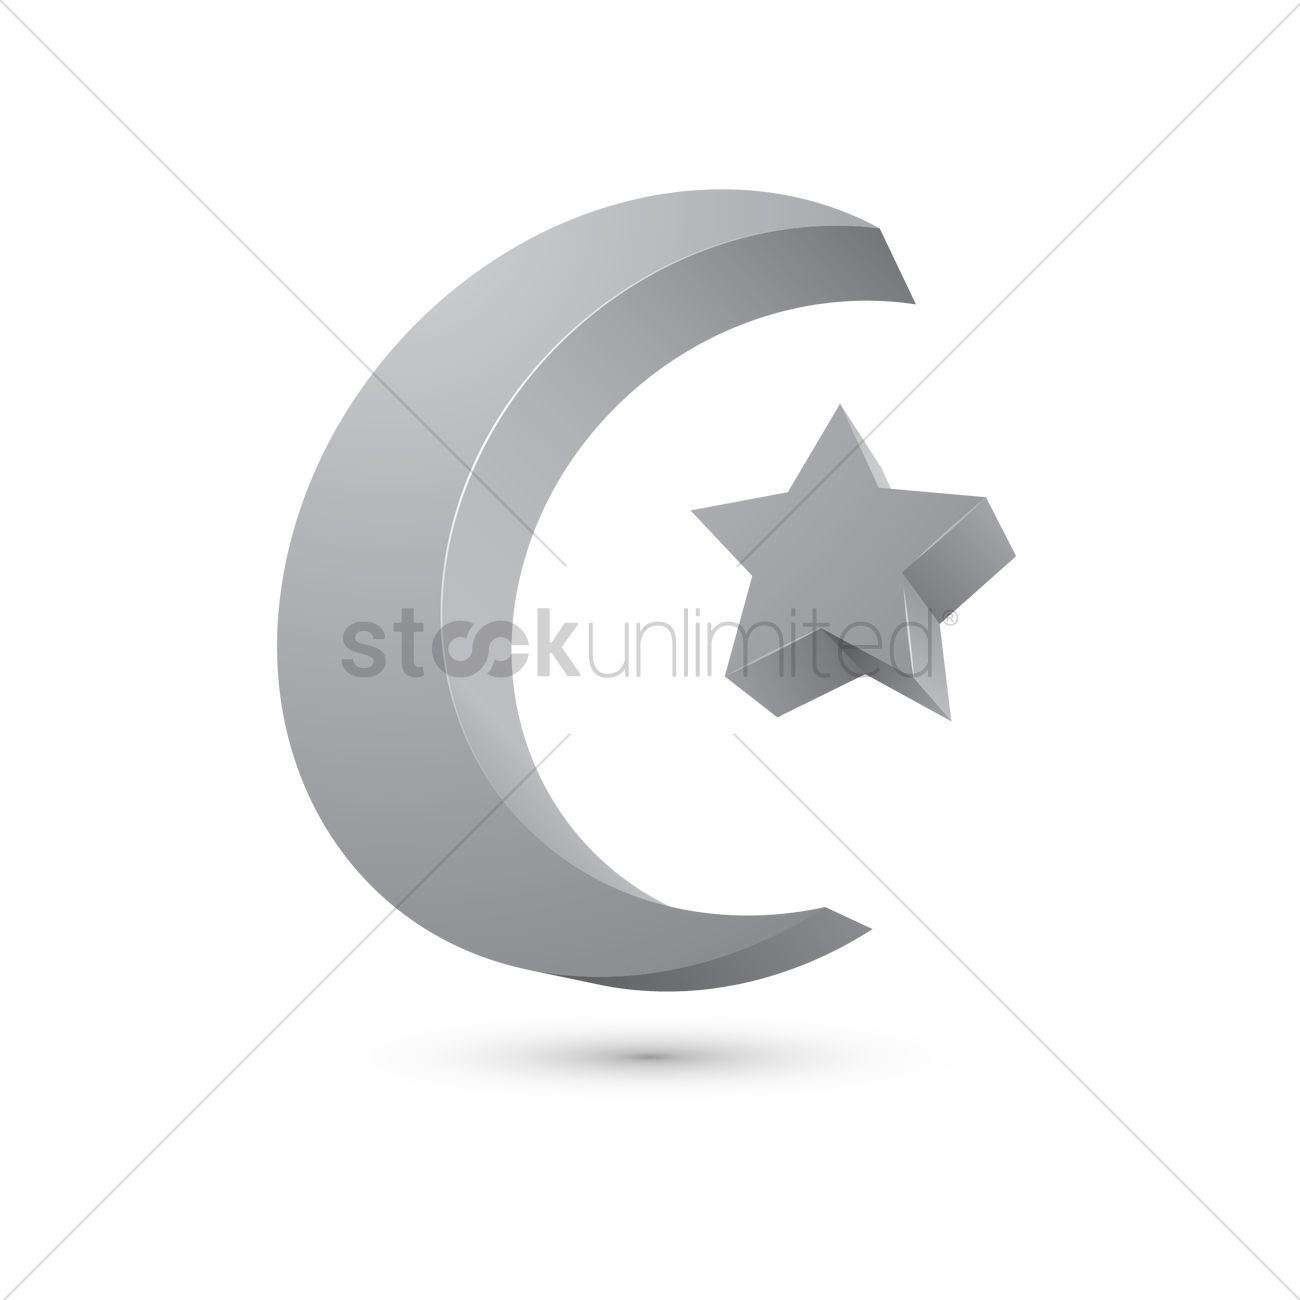 Symbol of islam vector image 1996930 stockunlimited symbol of islam vector graphic biocorpaavc